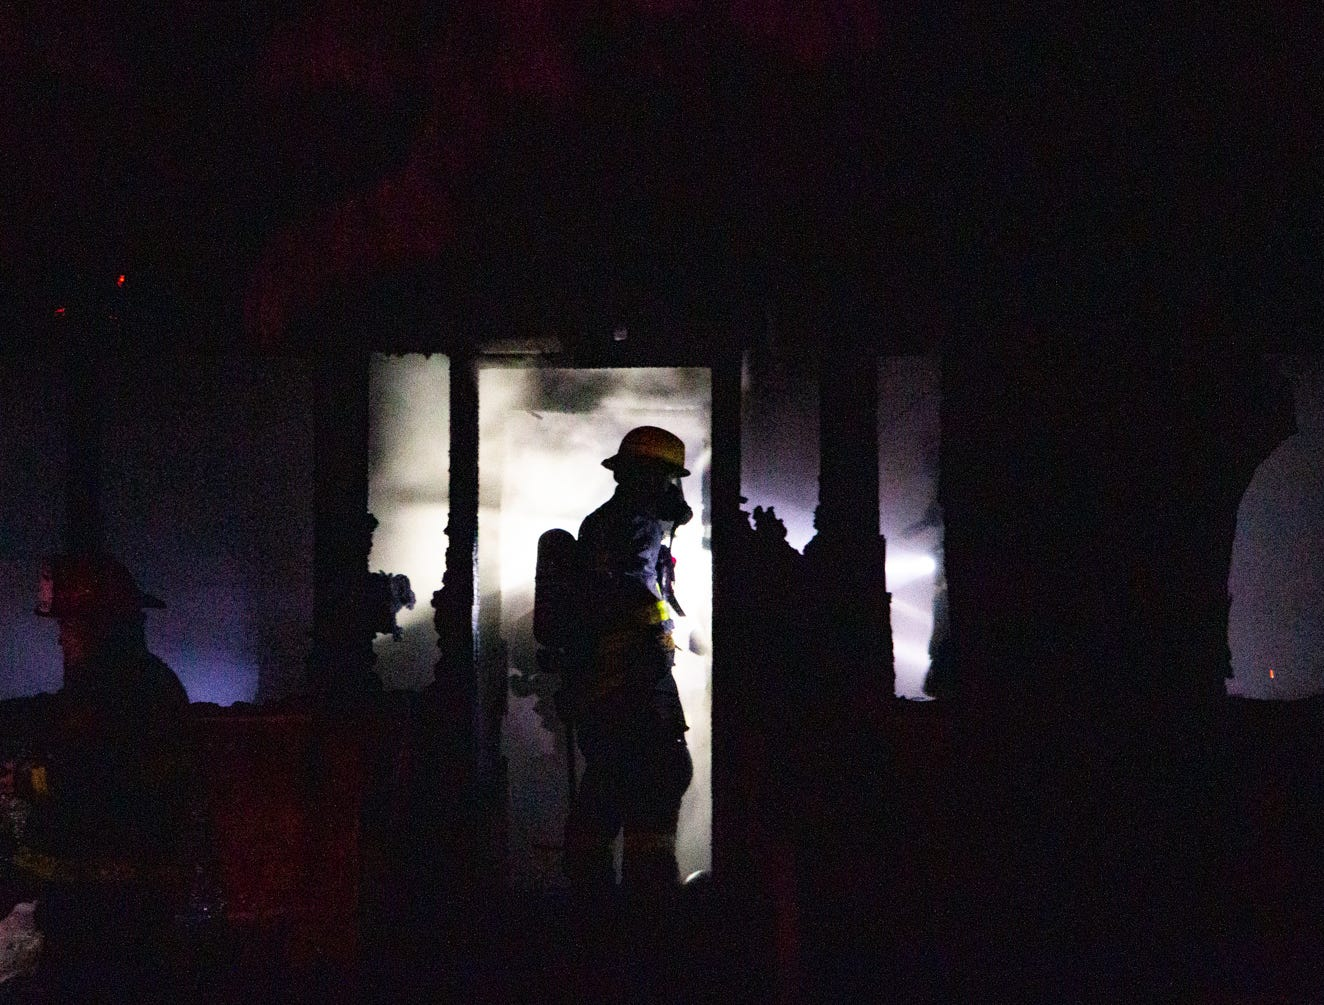 Fire crews work among heavy smoke while searching for a man that was thought to still be in the house at 1113 37th Street on Wednesday, Jan. 9, 2018.